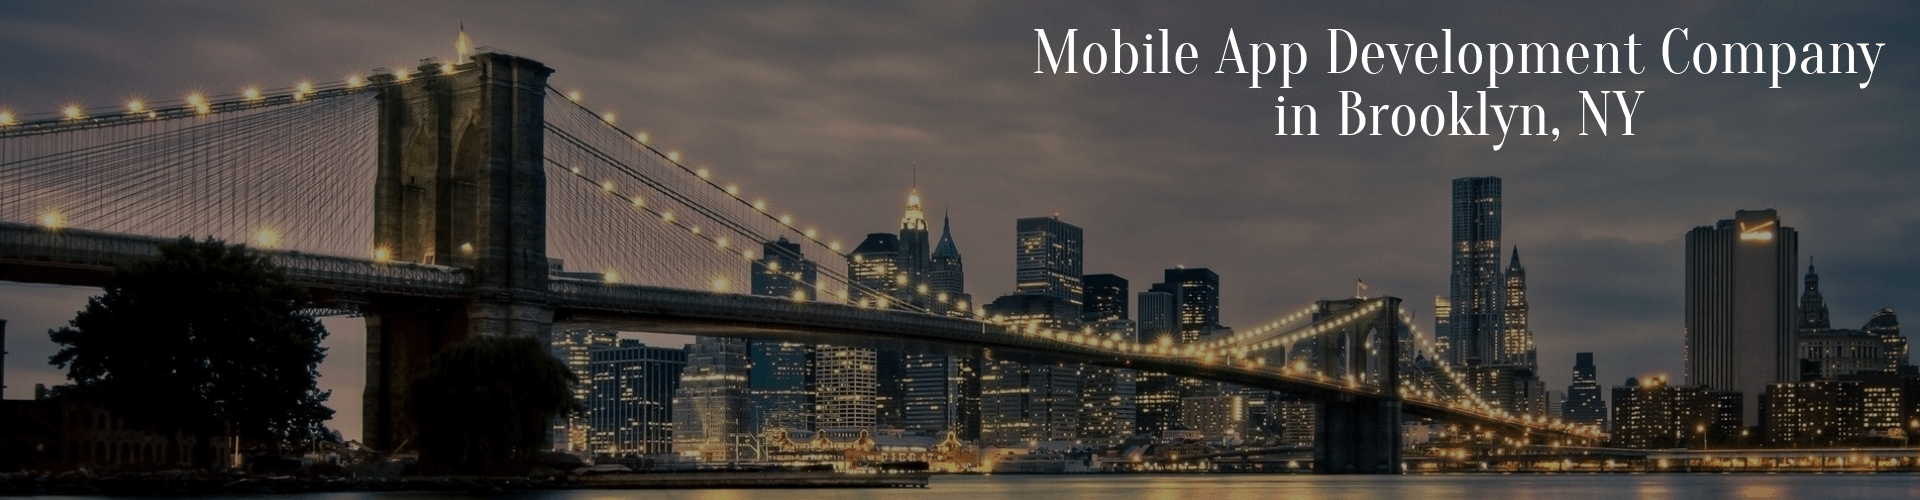 mobile app development company in brooklyn